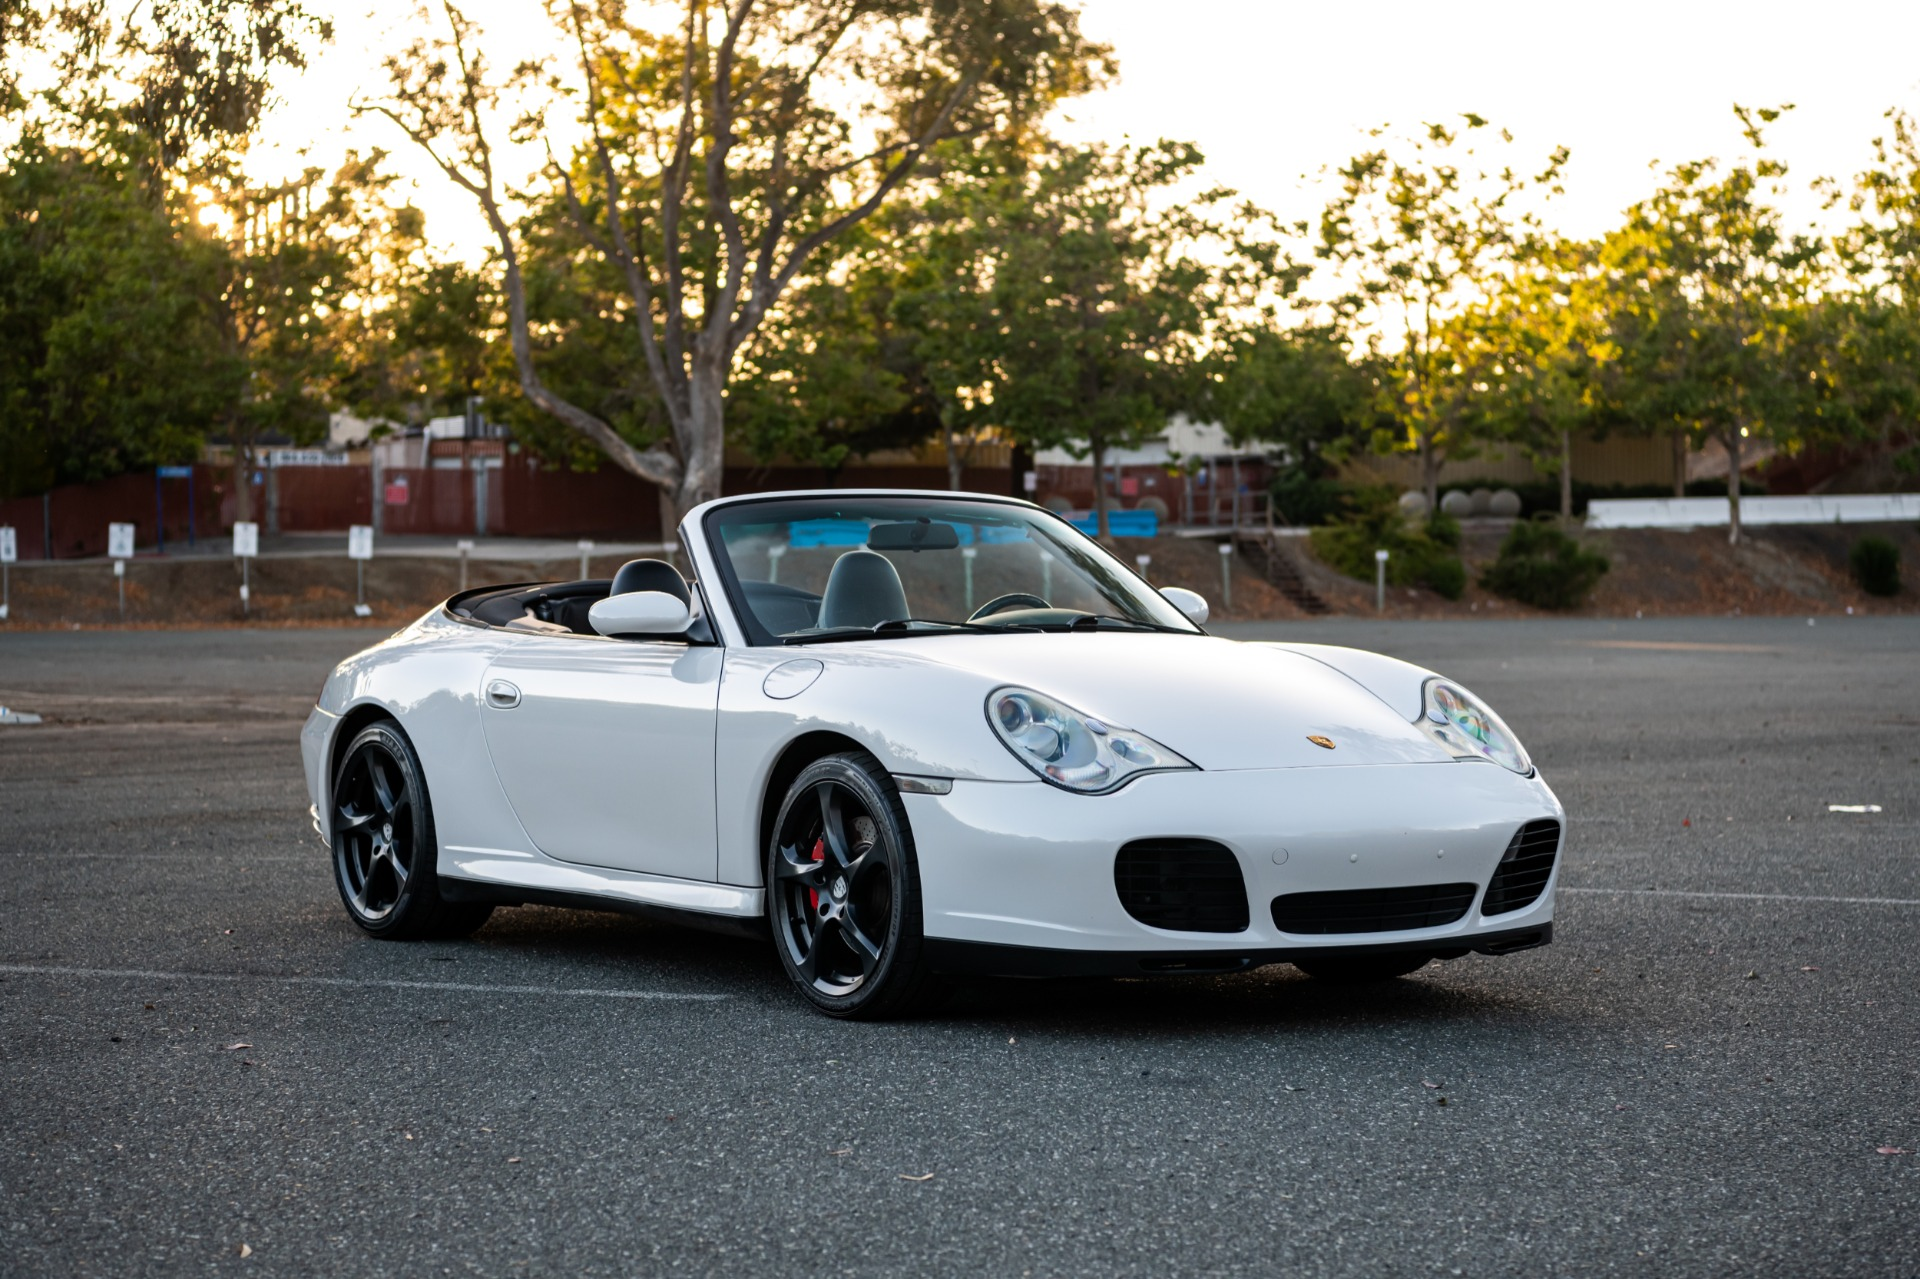 Used 2004 Porsche 911 Carrera 4S Used 2004 Porsche 911 Carrera 4S for sale $32,499 at Response Motors in Mountain View CA 1